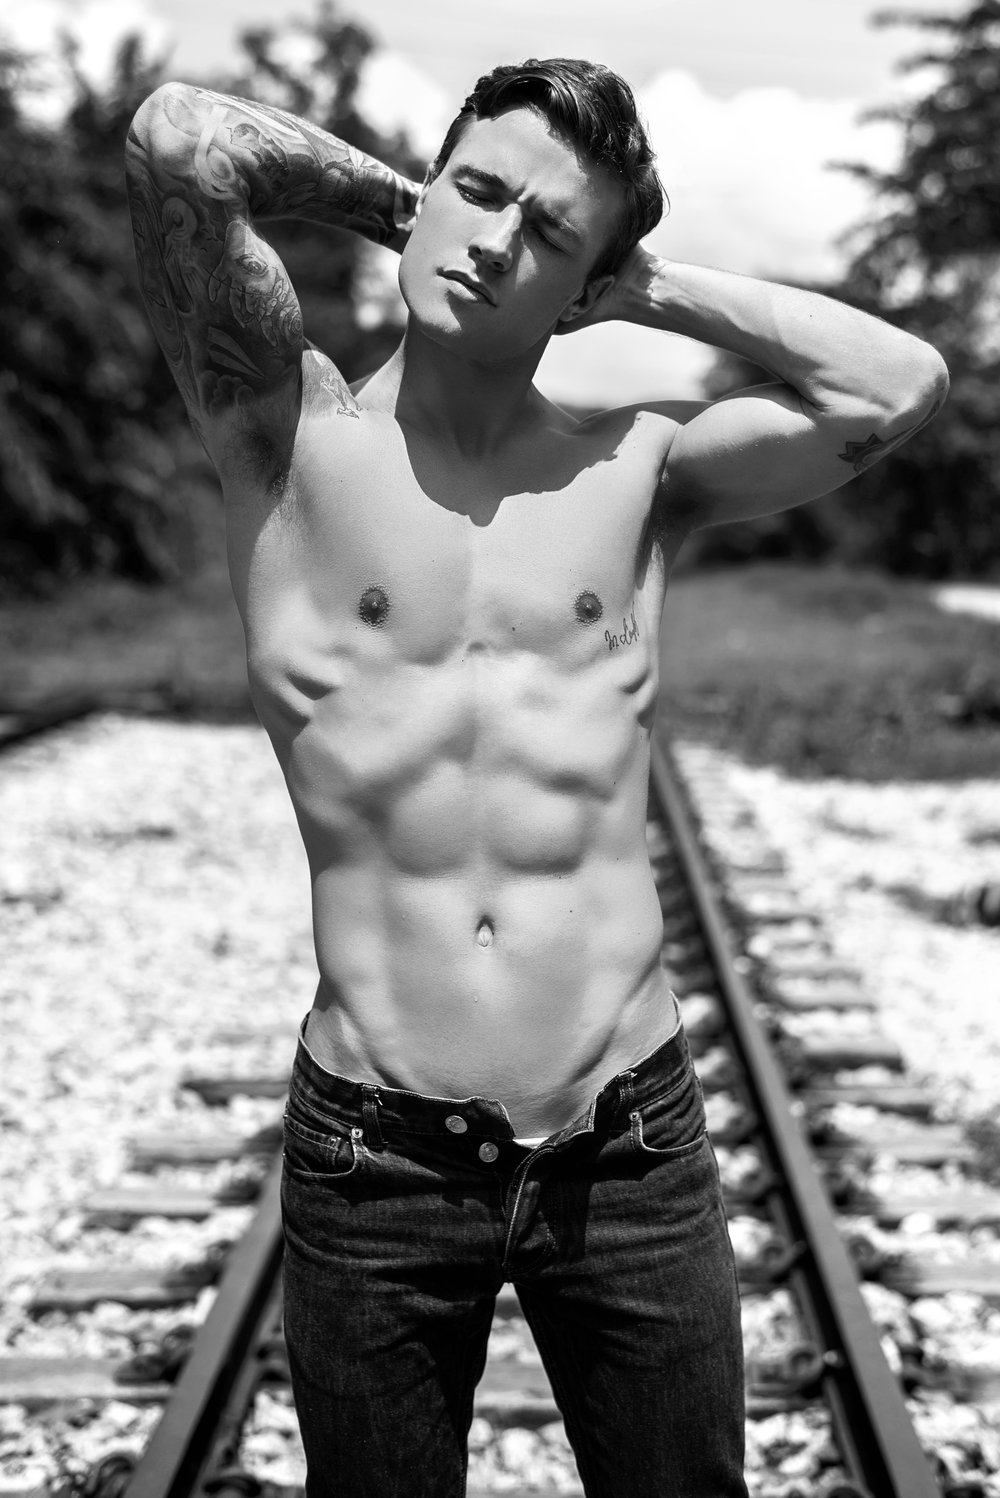 antoni-bialy-railway-2017-final-41bw.jpg